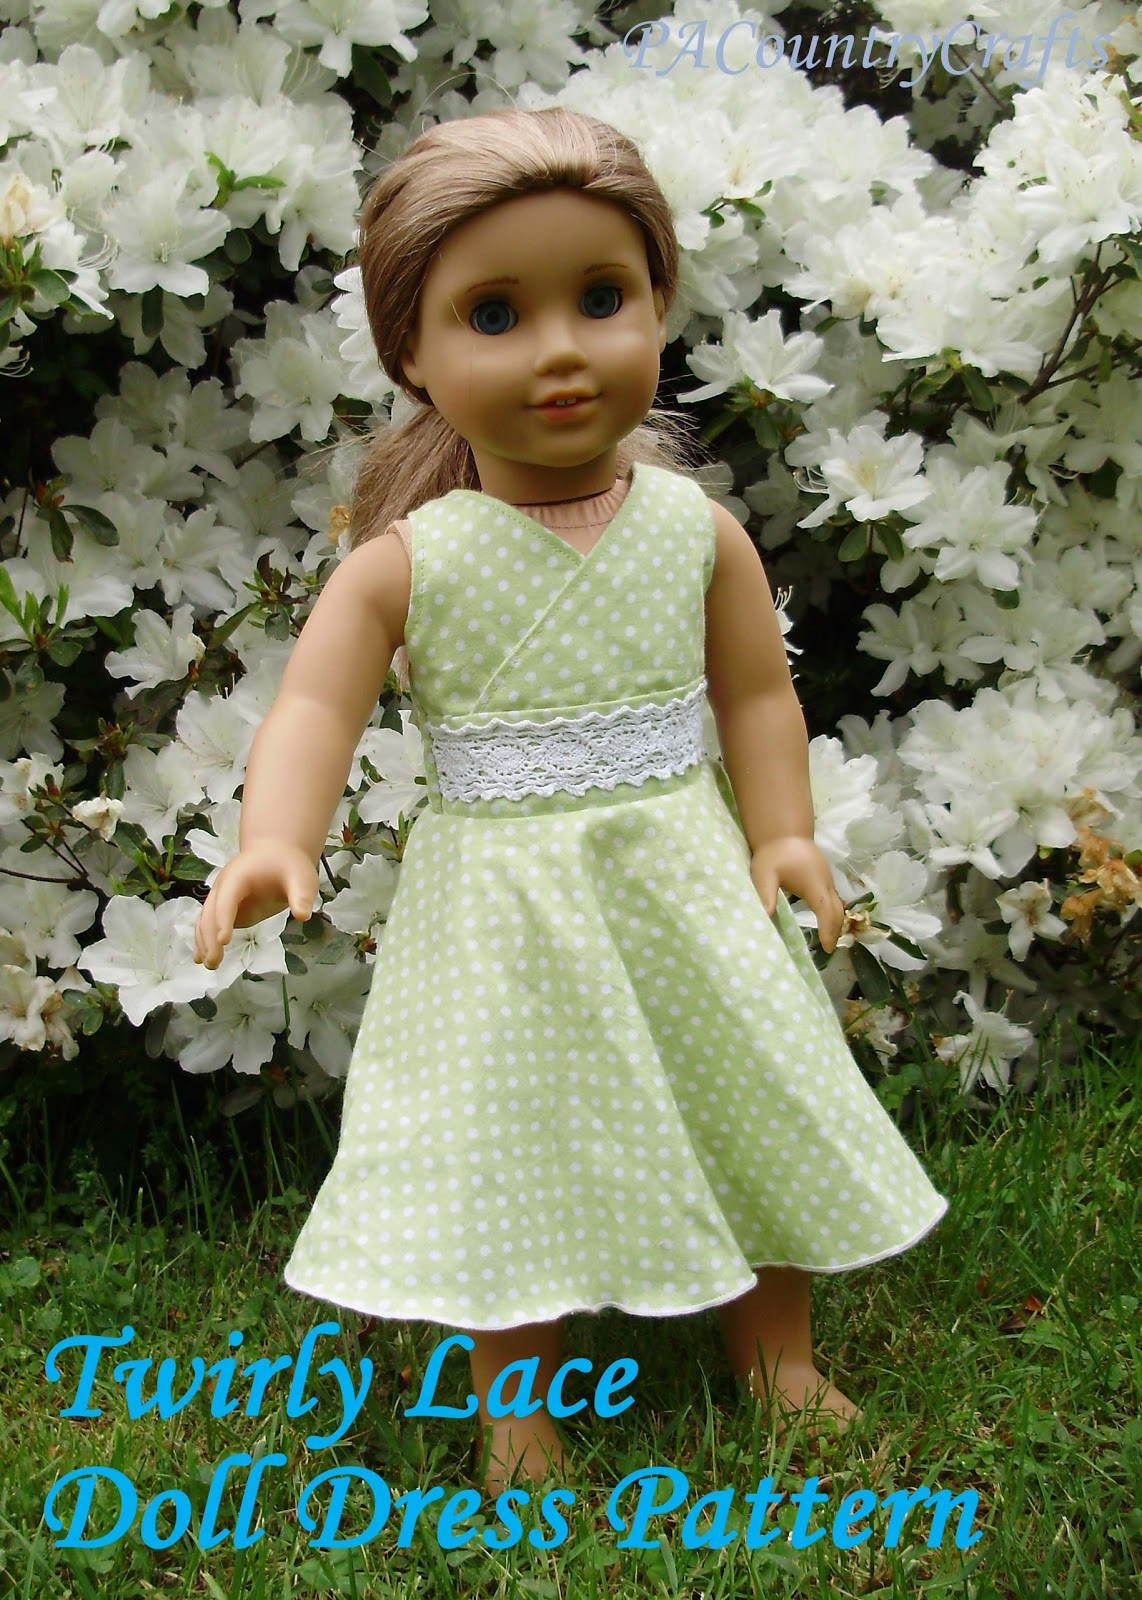 Best Of Twirly Lace Doll Dress Pattern American Girl Doll Clothes Patterns Of Incredible 40 Images American Girl Doll Clothes Patterns